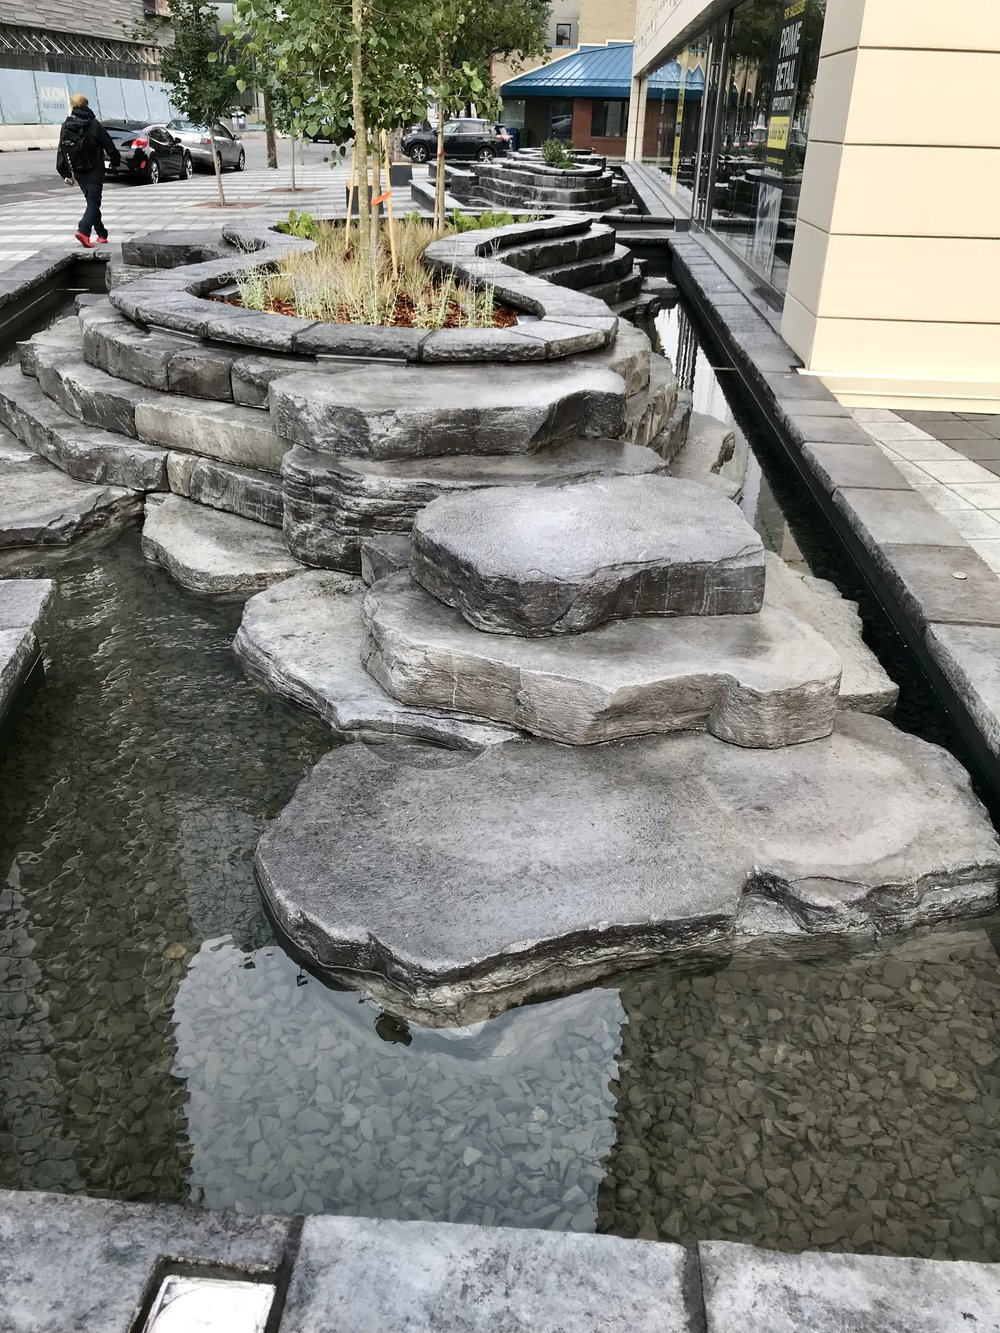 6th and Tenth's mini plaza and water feature were designed to enhance the pedestrian experience and be a meeting place for those living in the area.